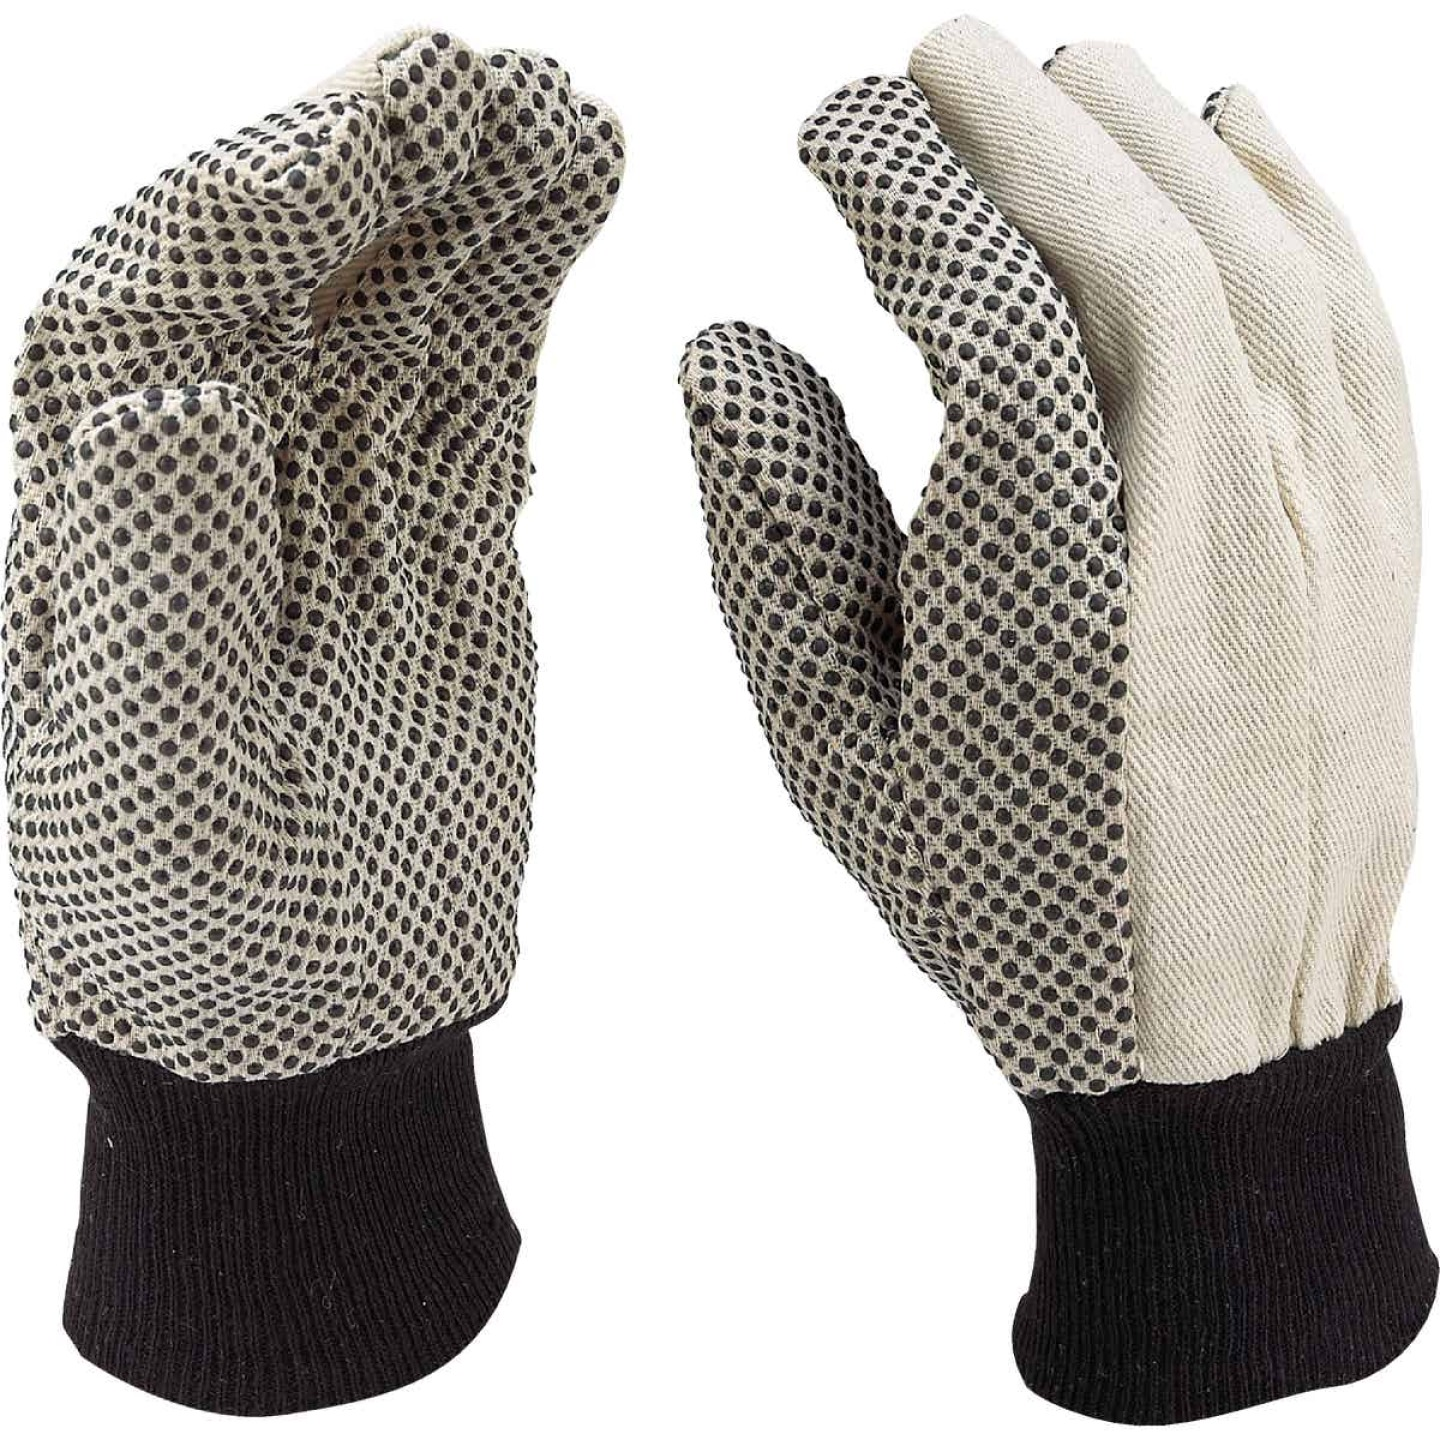 Do it Men's Large PVC Grip Cotton Canvas Work Glove Image 3